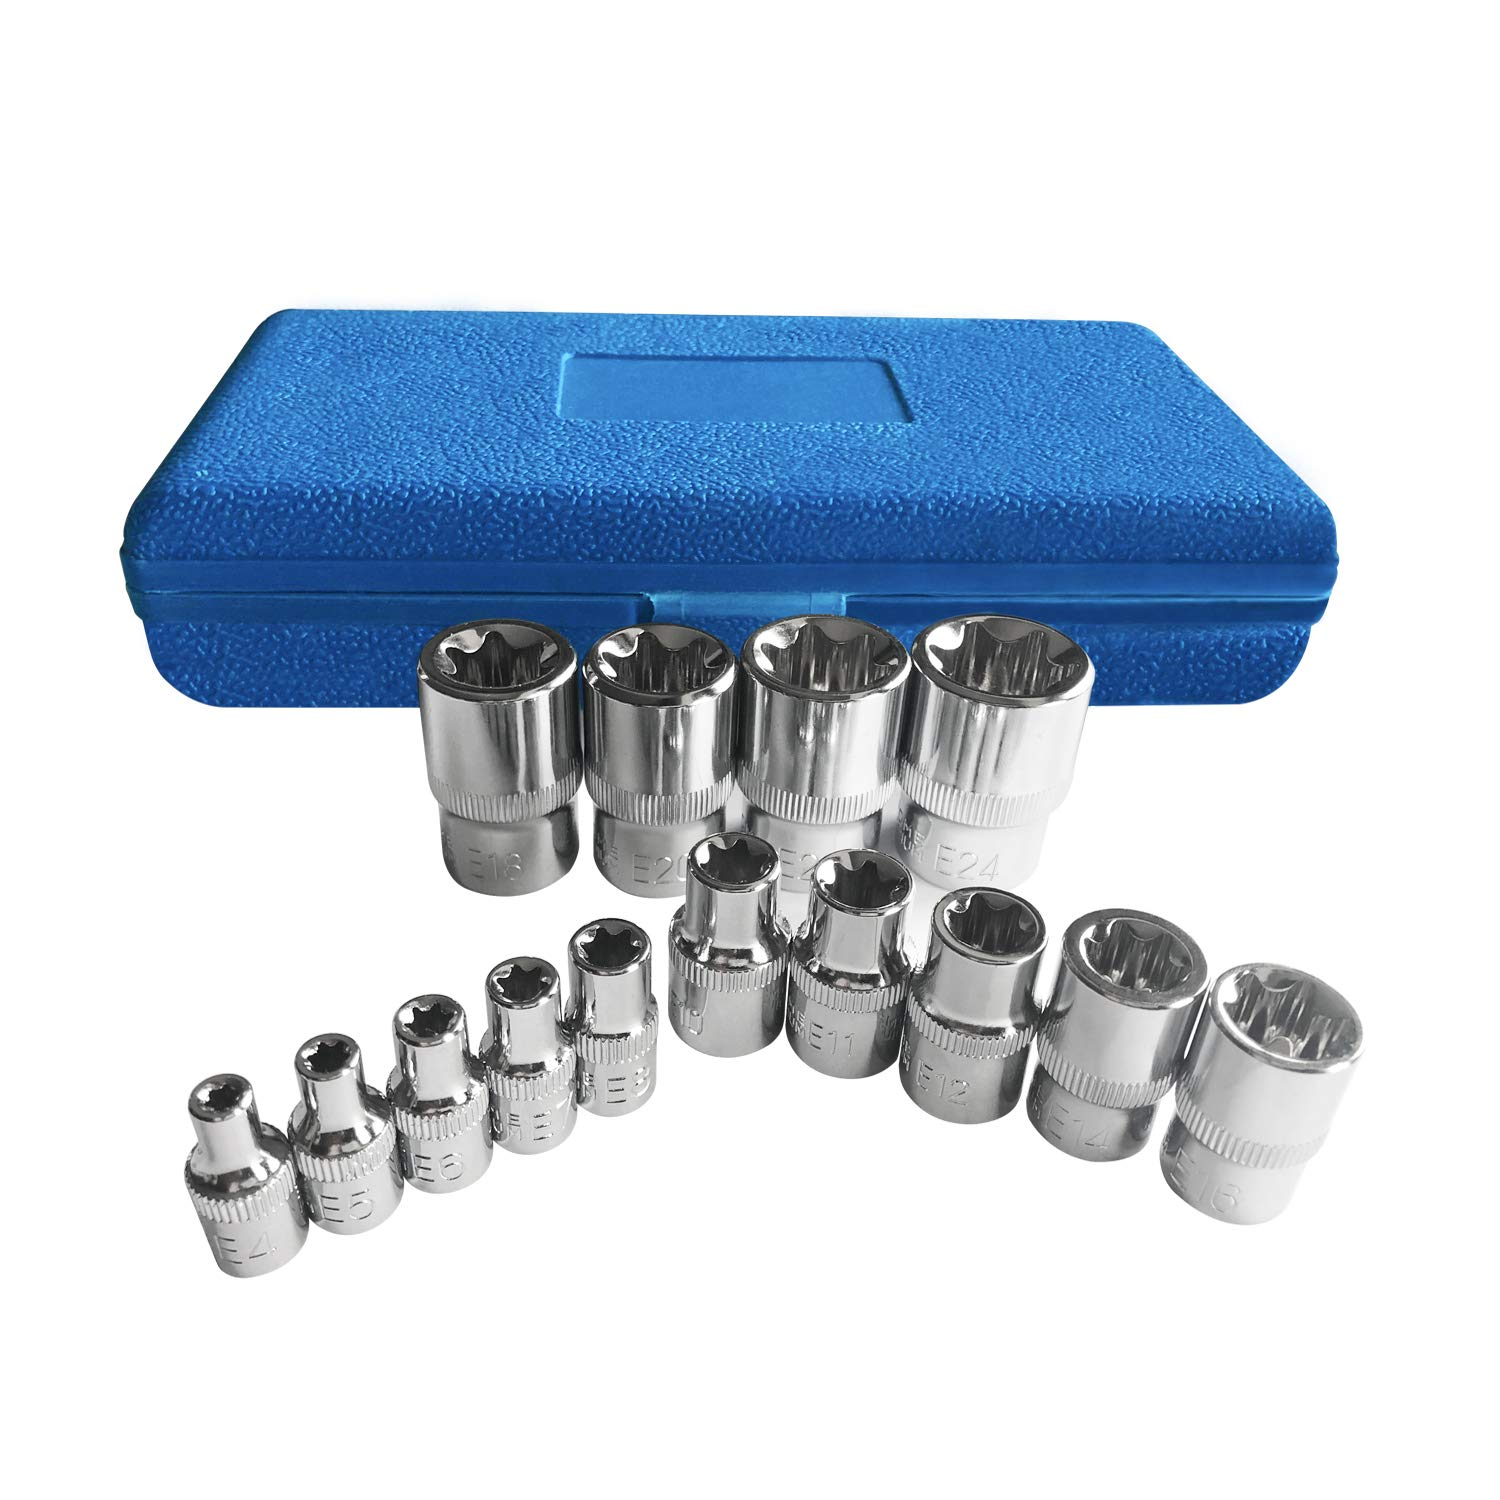 Torx Socket Set,E-Type External Torx Star Plus Socket Bit Set CR-V Steel Socket Bits 9PC 1//2 inch Drive E10-E24